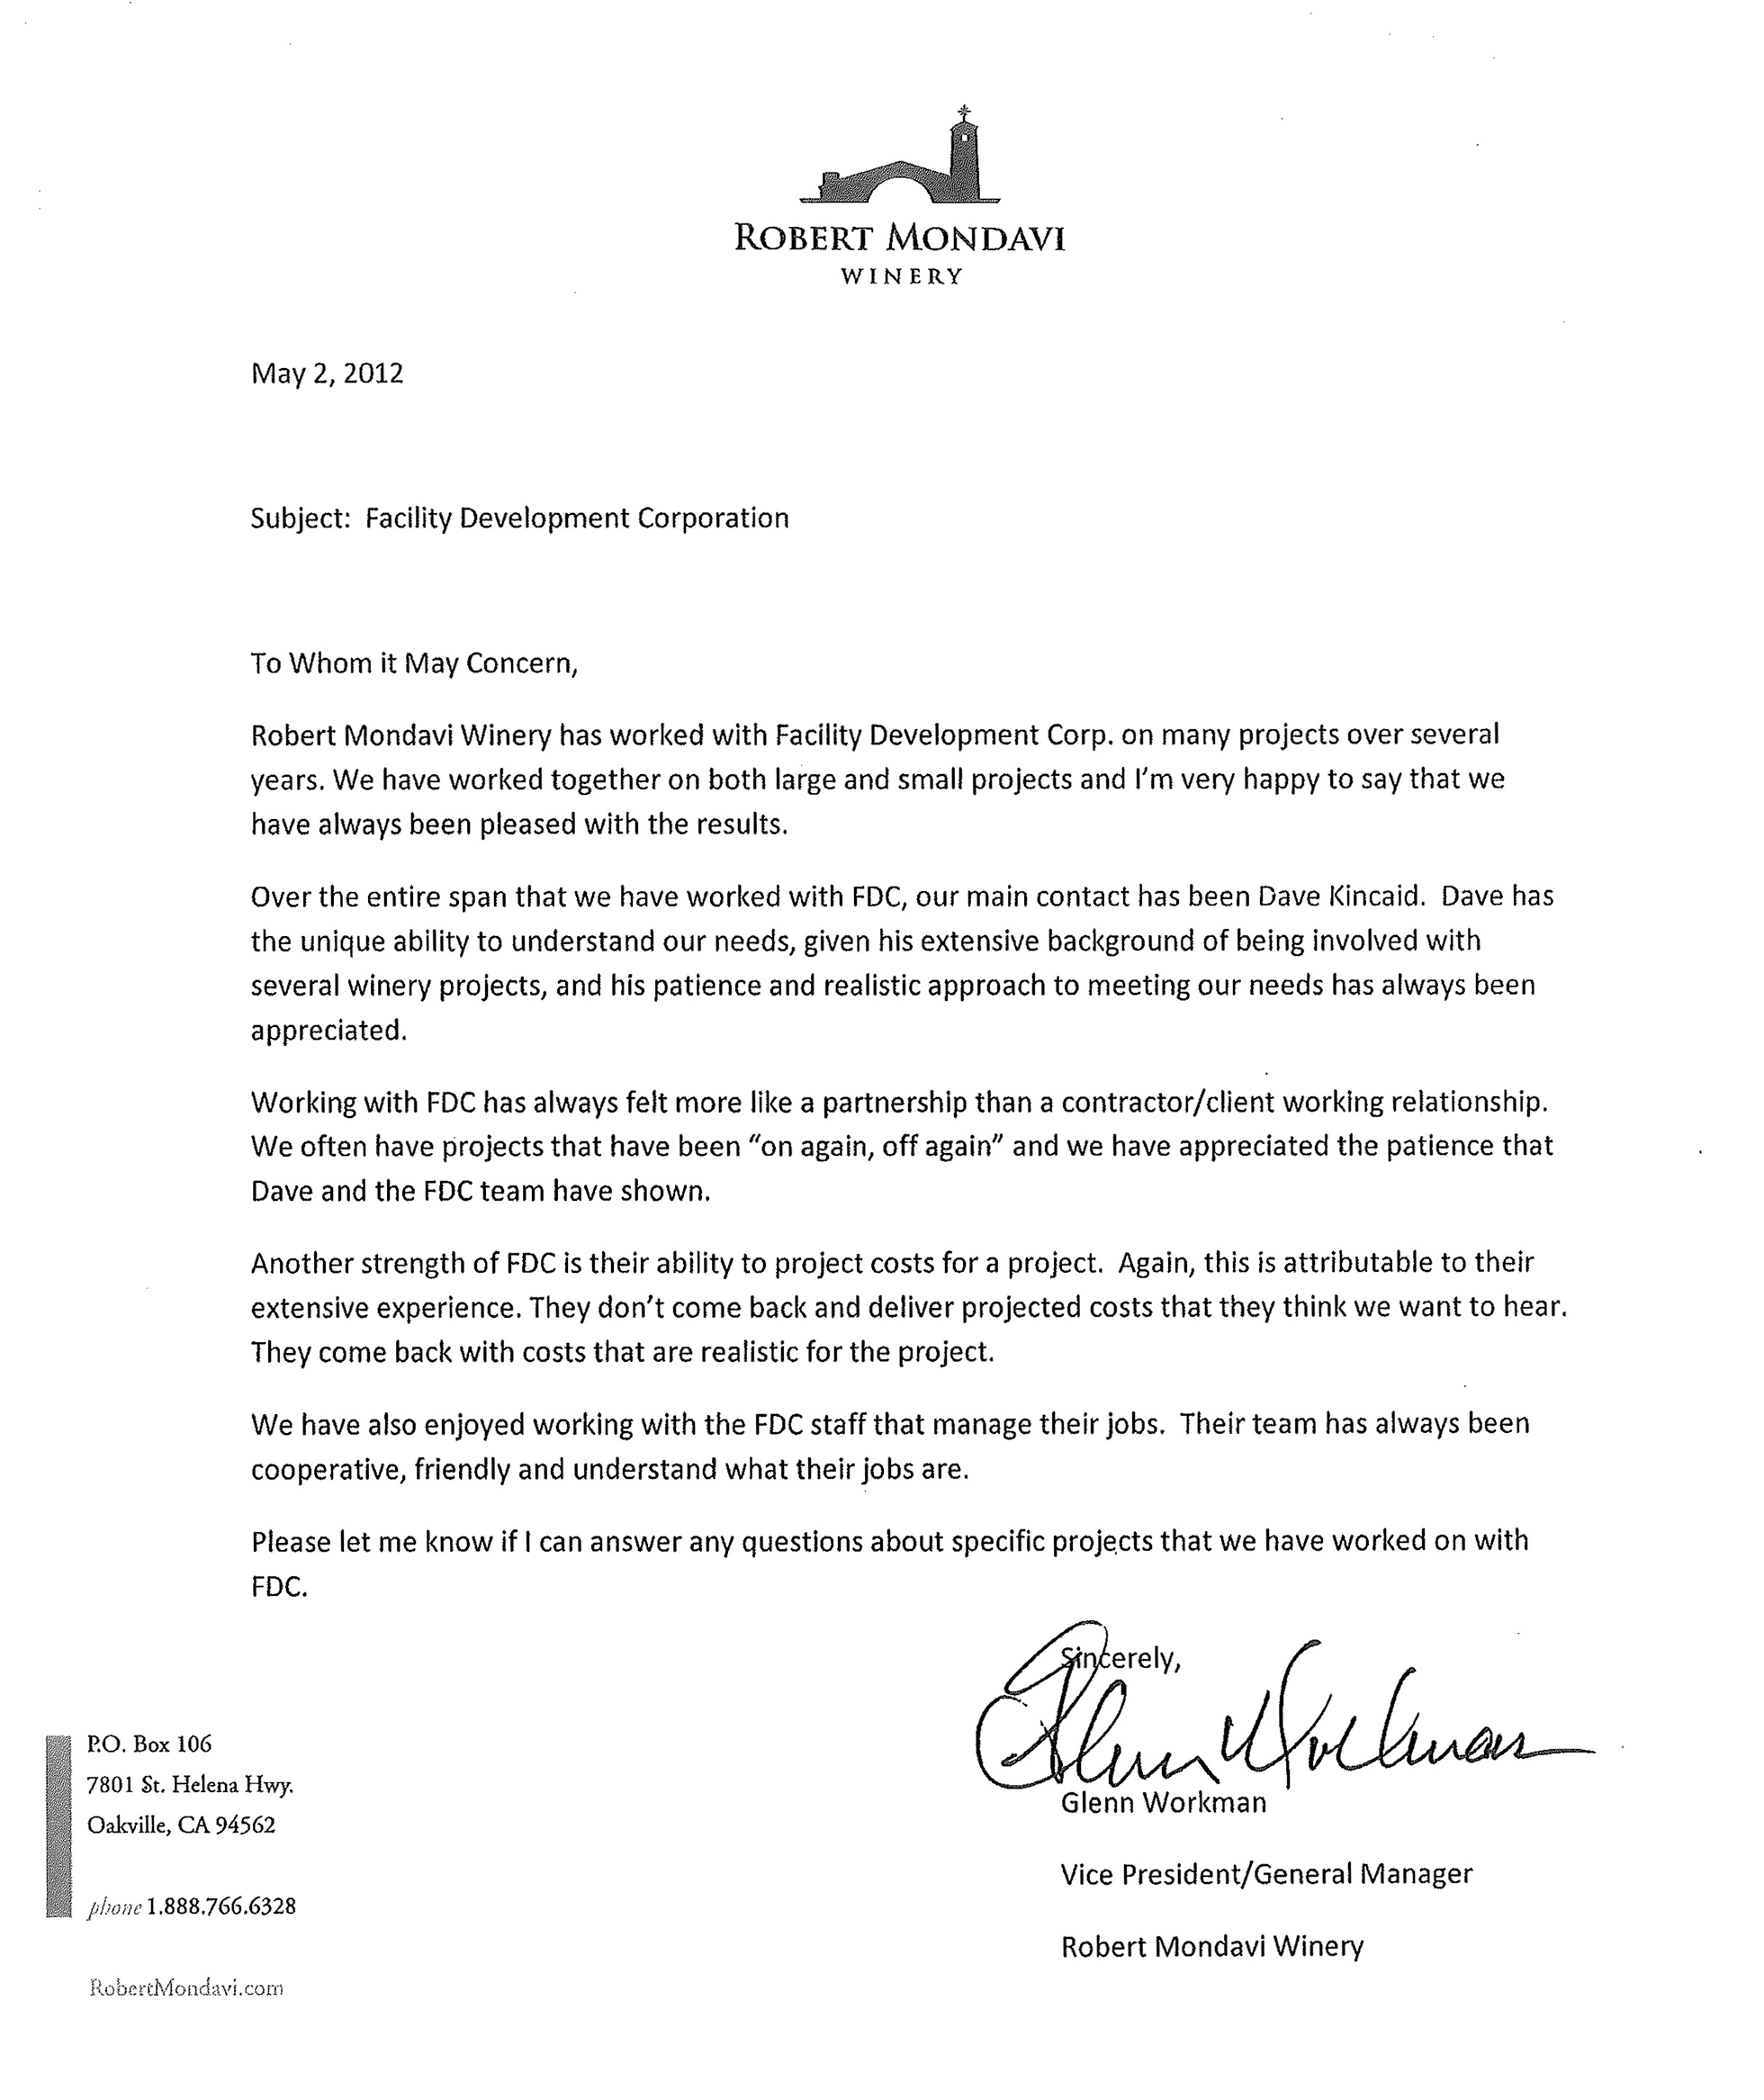 Robert Mondavi Winery letter of recommendation for FDC